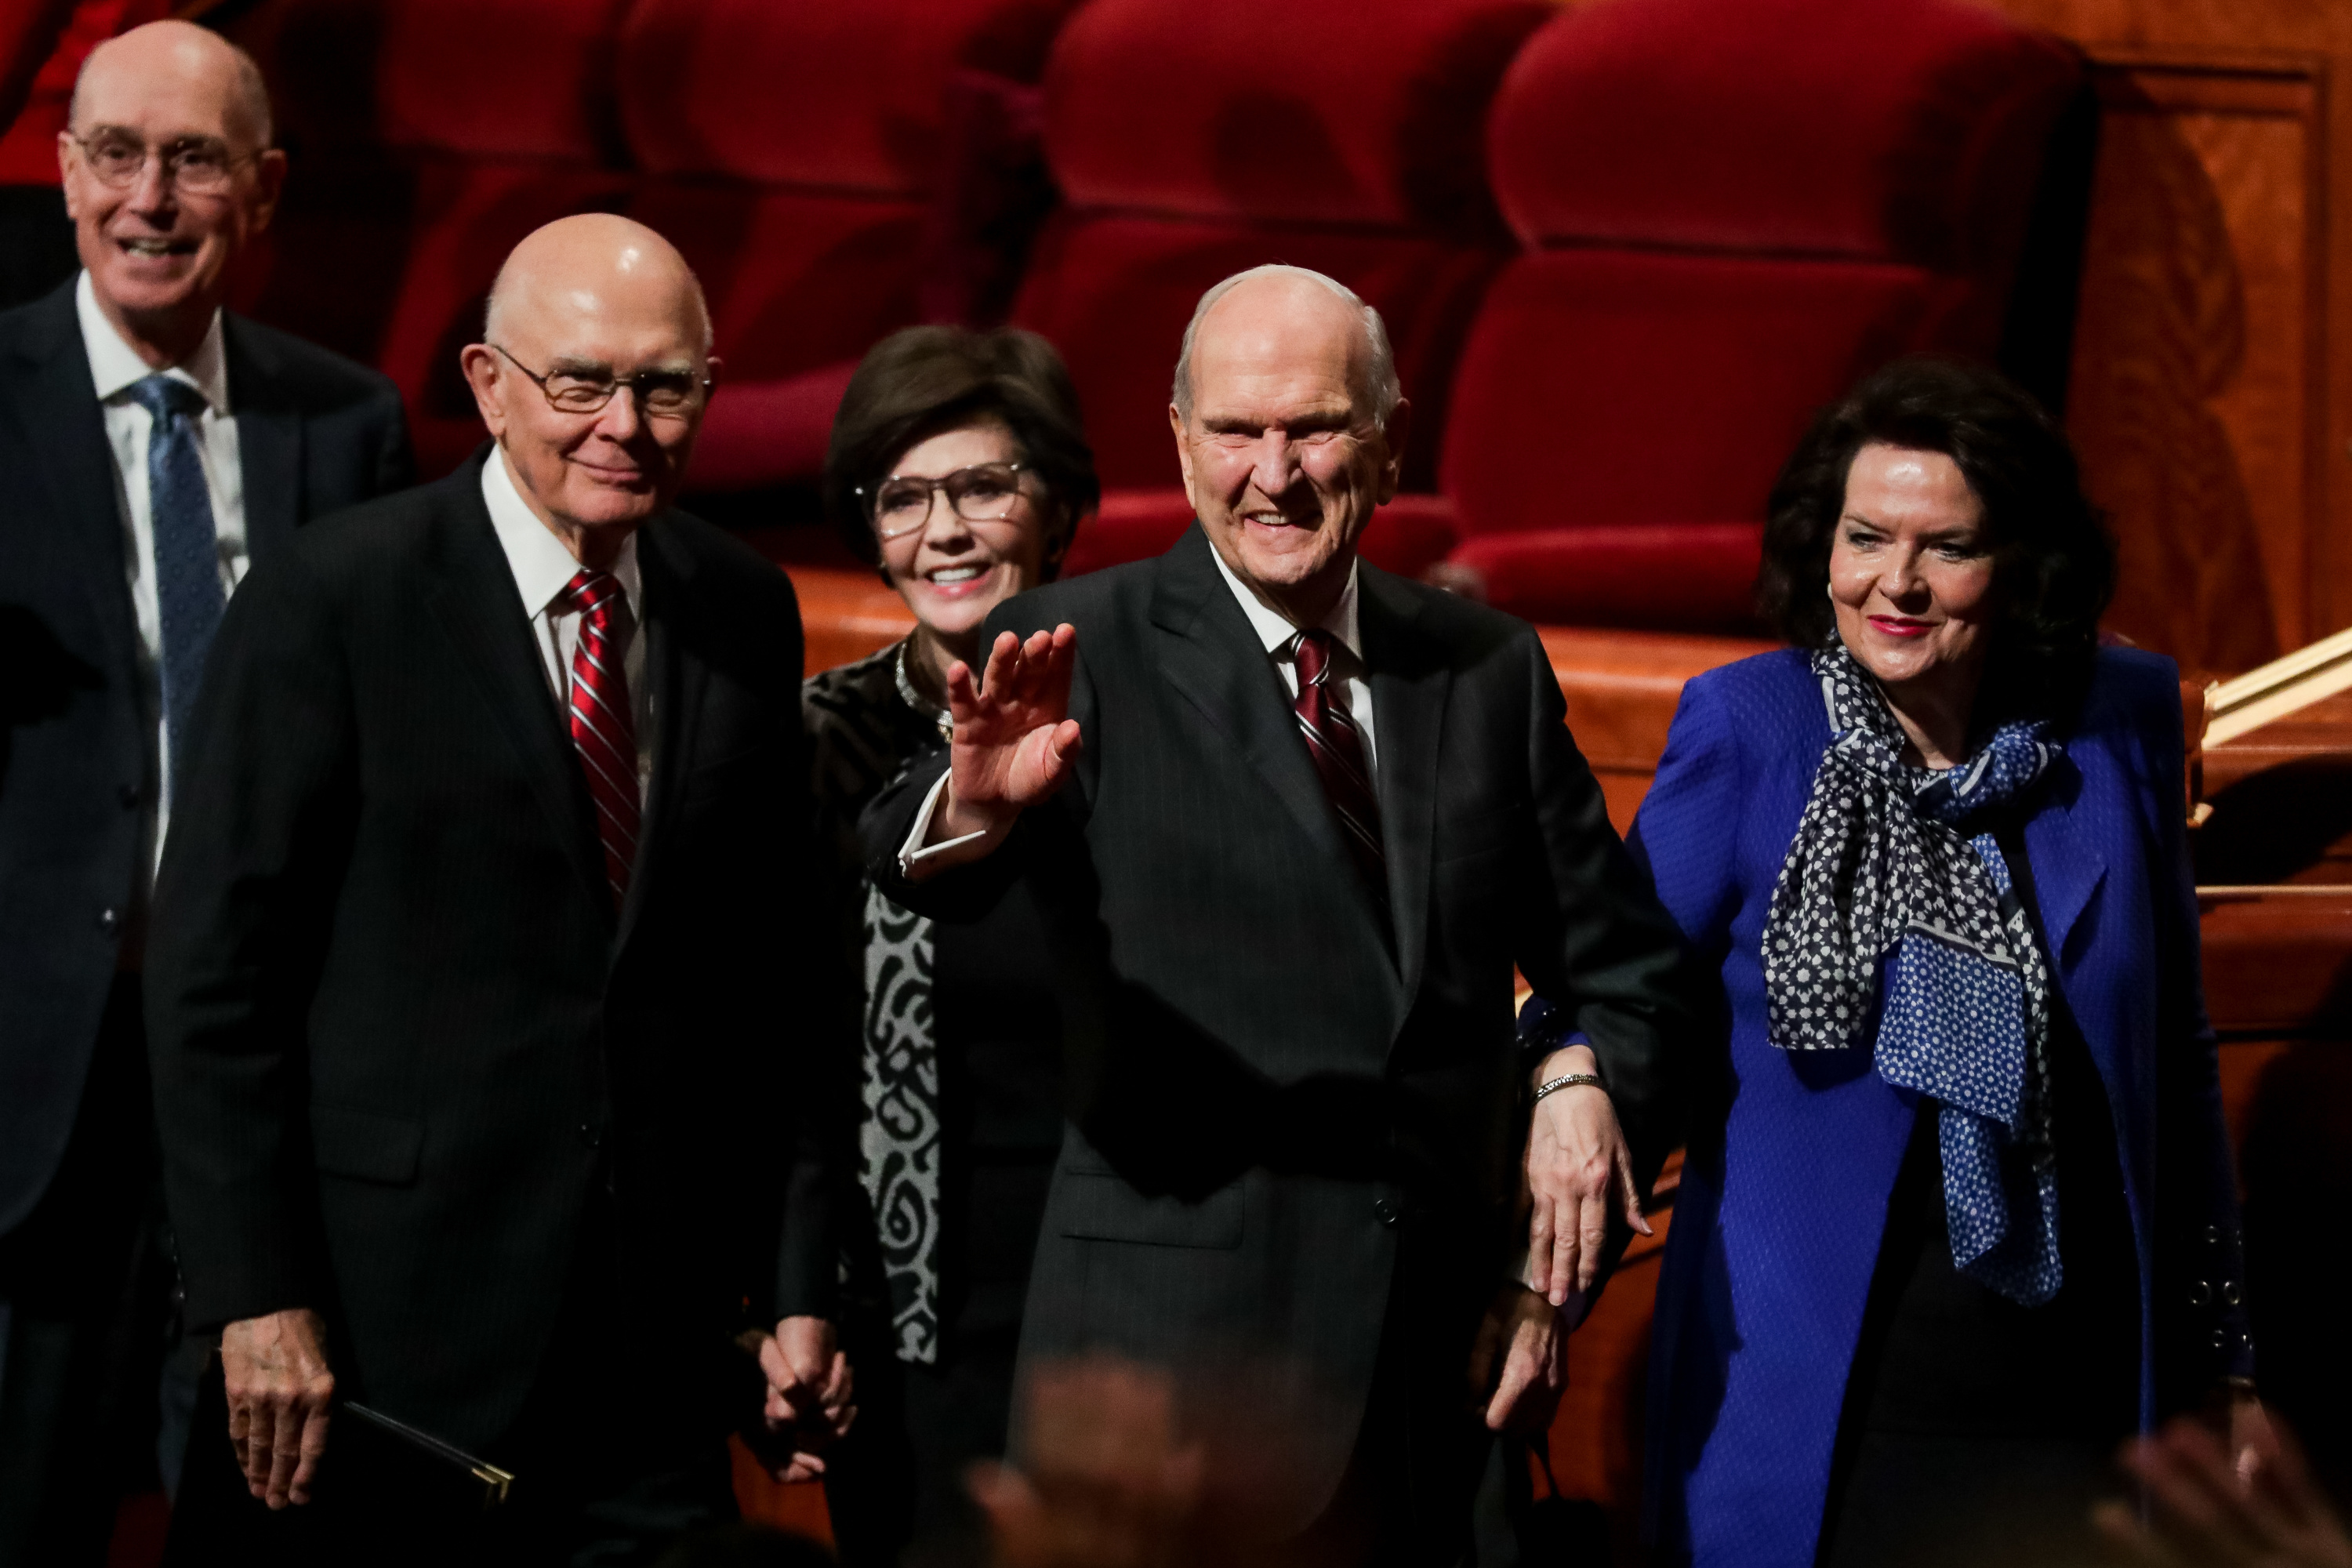 President Henry B. Eyring, second counselor in the First Presidency, President Dallin H. Oaks, first counselor in the First Presidency, his wife, Sister Kristen Oaks, President Russell M. Nelson and his wife, Sister Wendy Nelson, left to right, leave the rostrum at the end of the Saturday afternoon session of the 188th Semiannual General Conference of The Church of Jesus Christ of Latter-day Saints at the Conference Center in Salt Lake City on Saturday, Oct. 6, 2018. On March 5, 2019, the First Presidency announced changes to the names of LDS.org, Mormon.org and other Church communication channels.